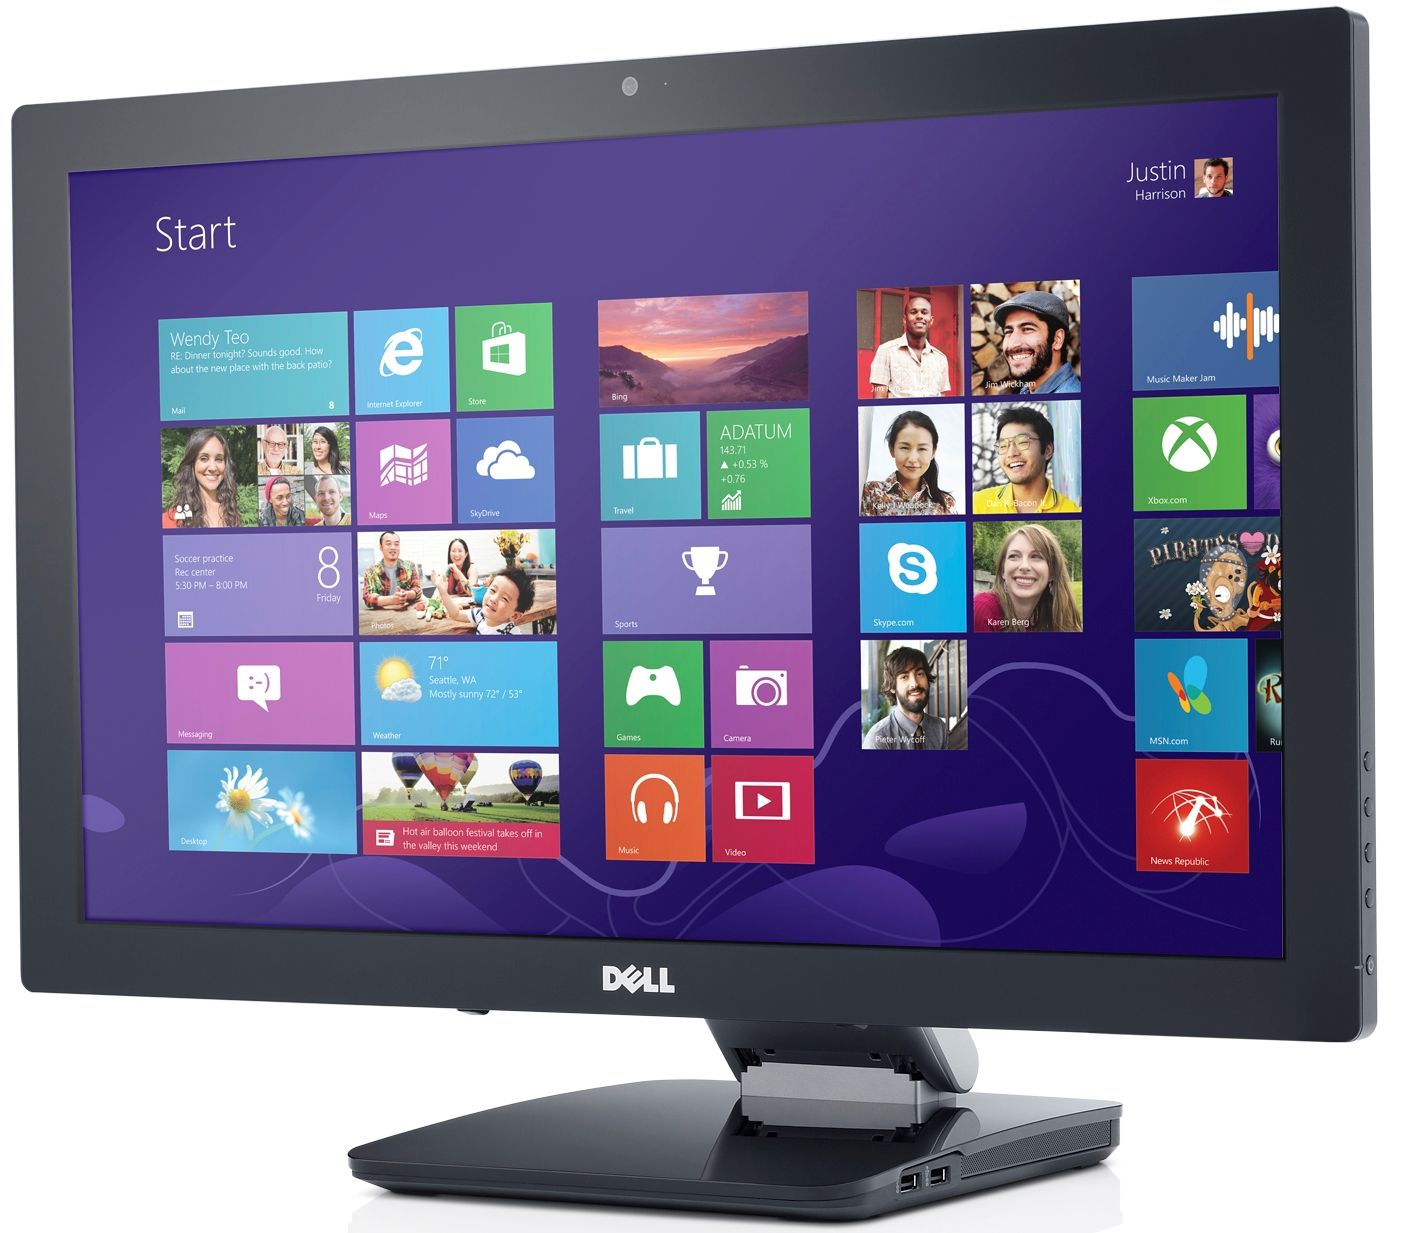 Dells new s2340t 23 multitouch monitor brings touch to